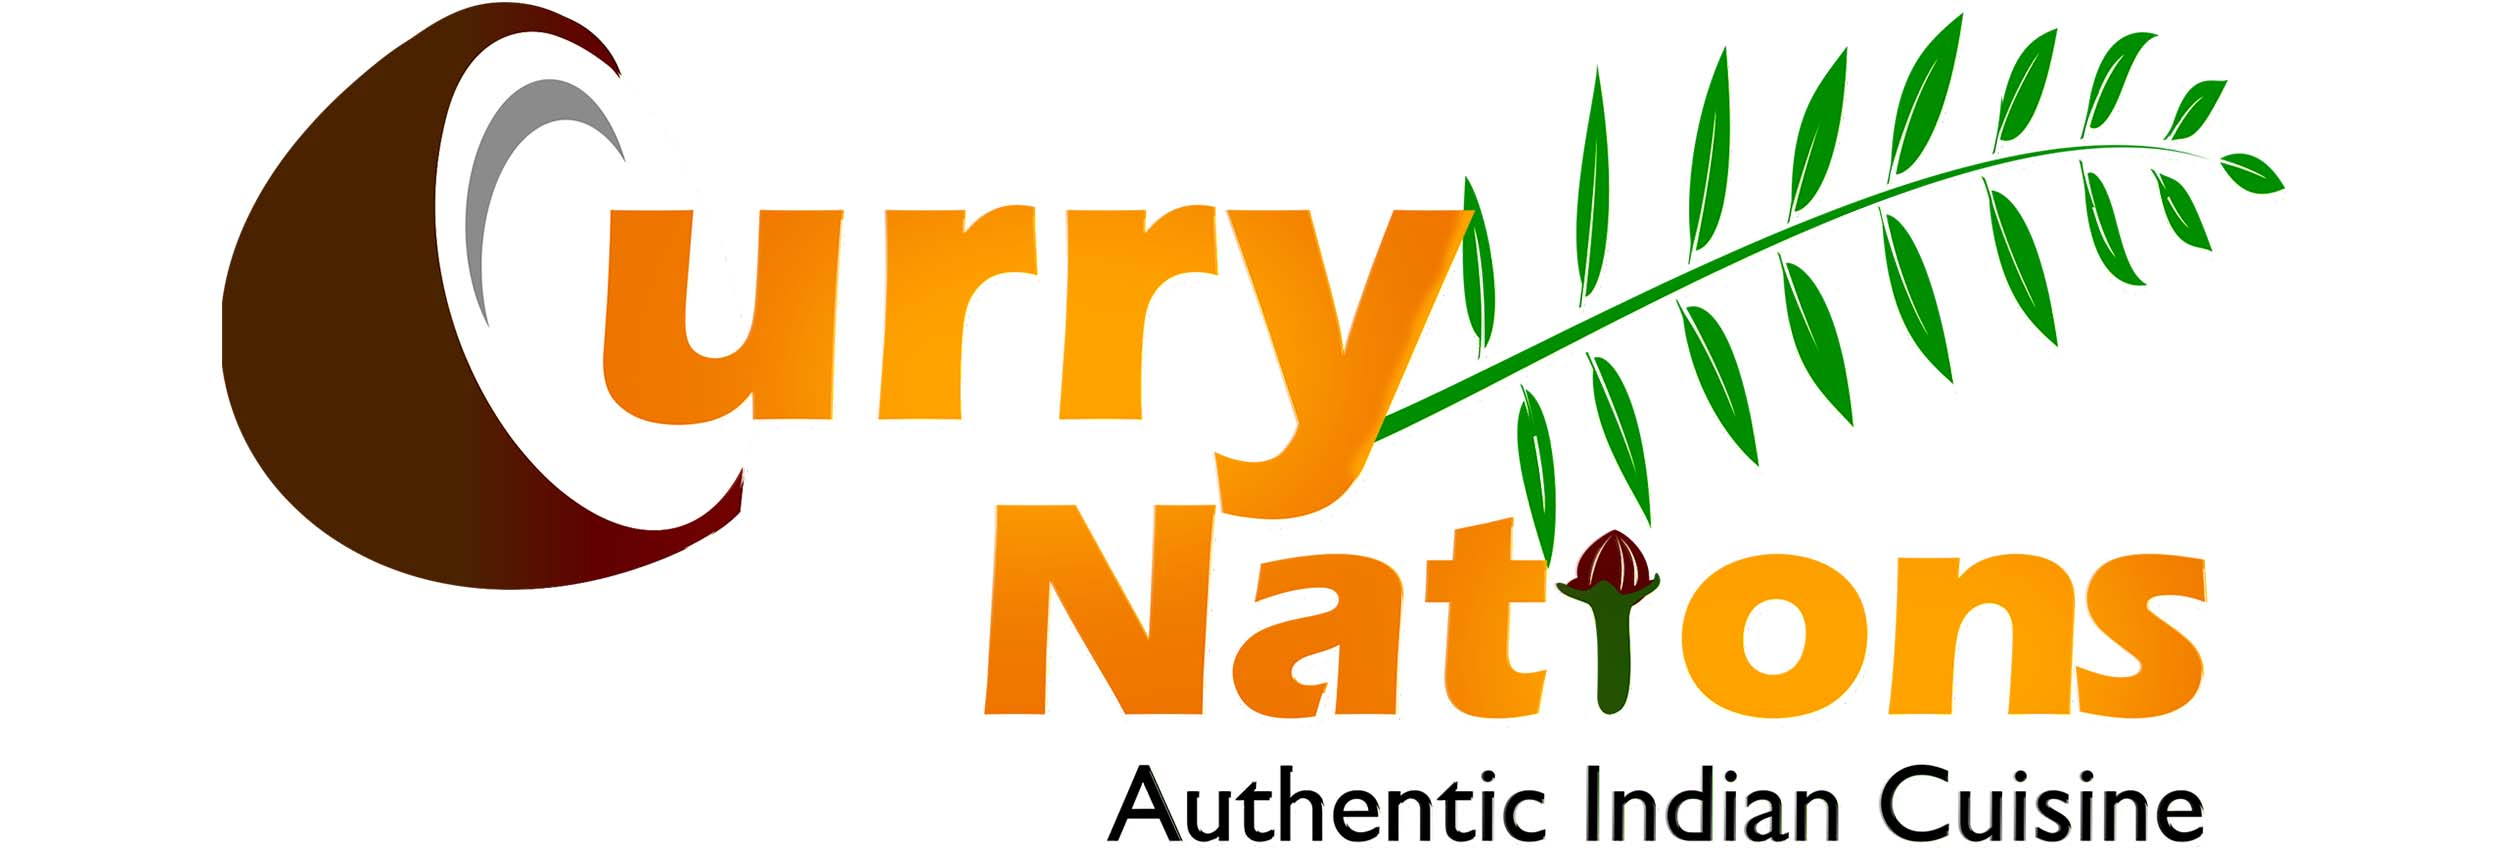 CurryNations